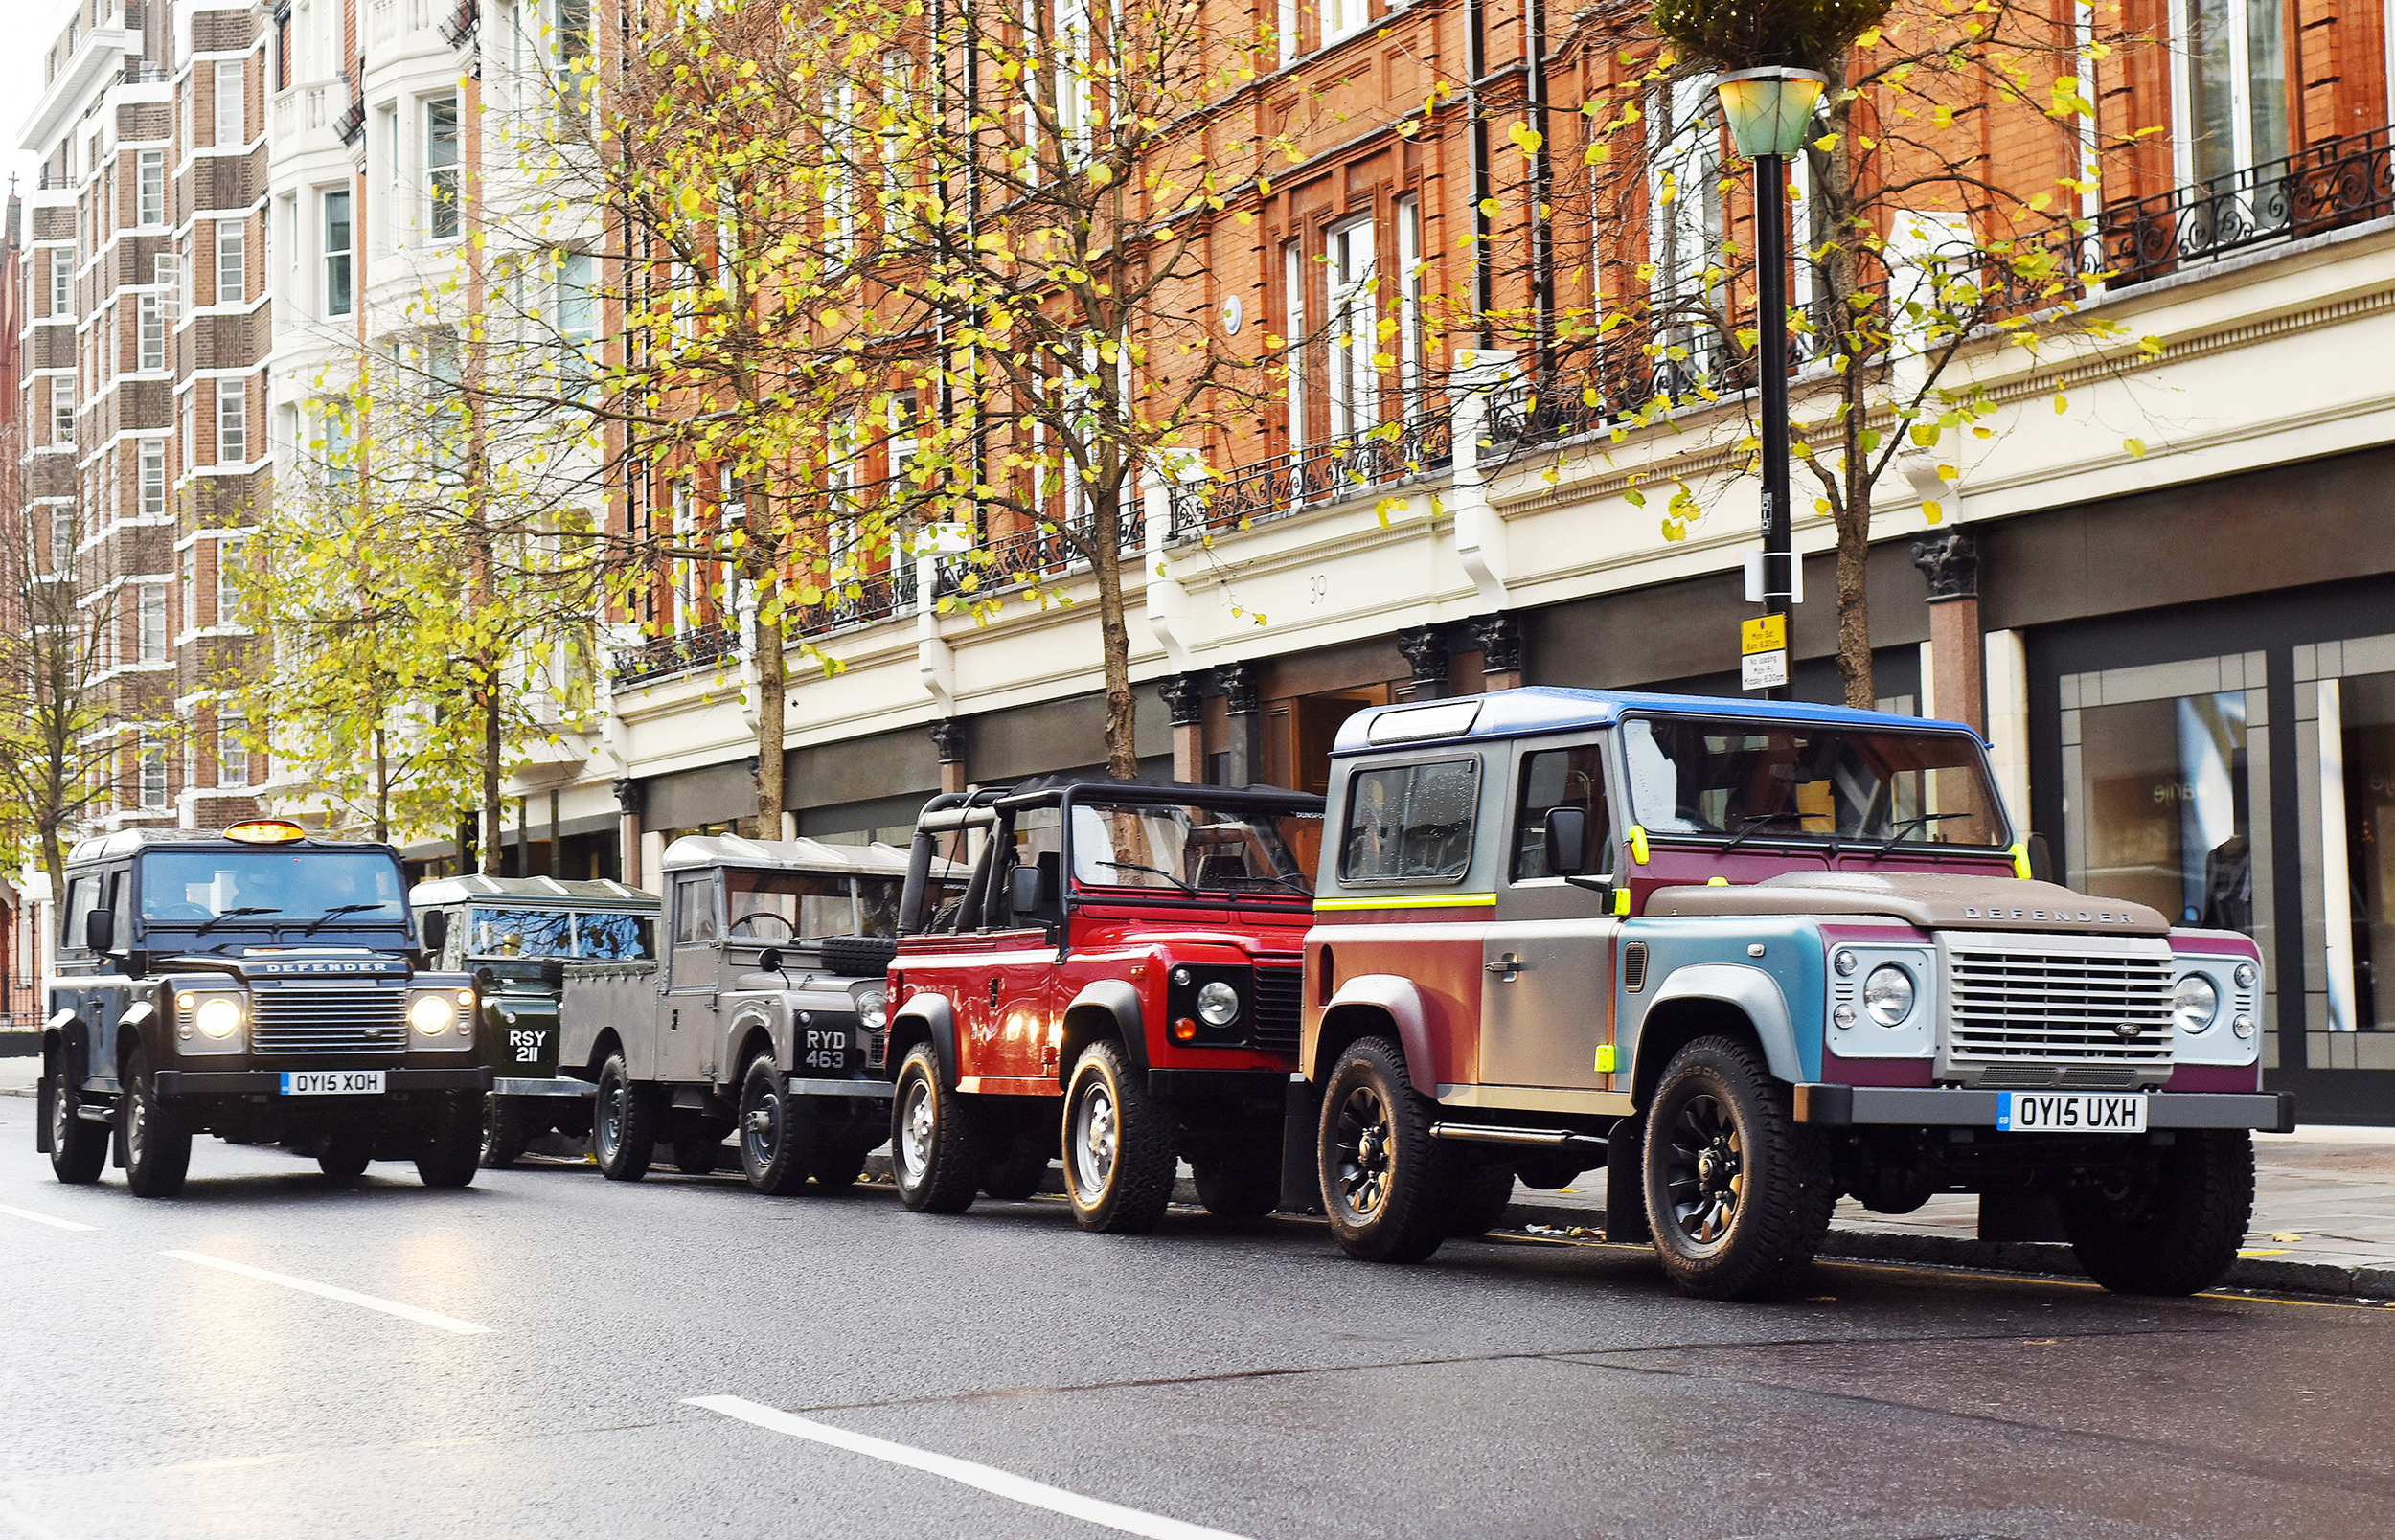 Land Rover 'taxi' tackles streets of London